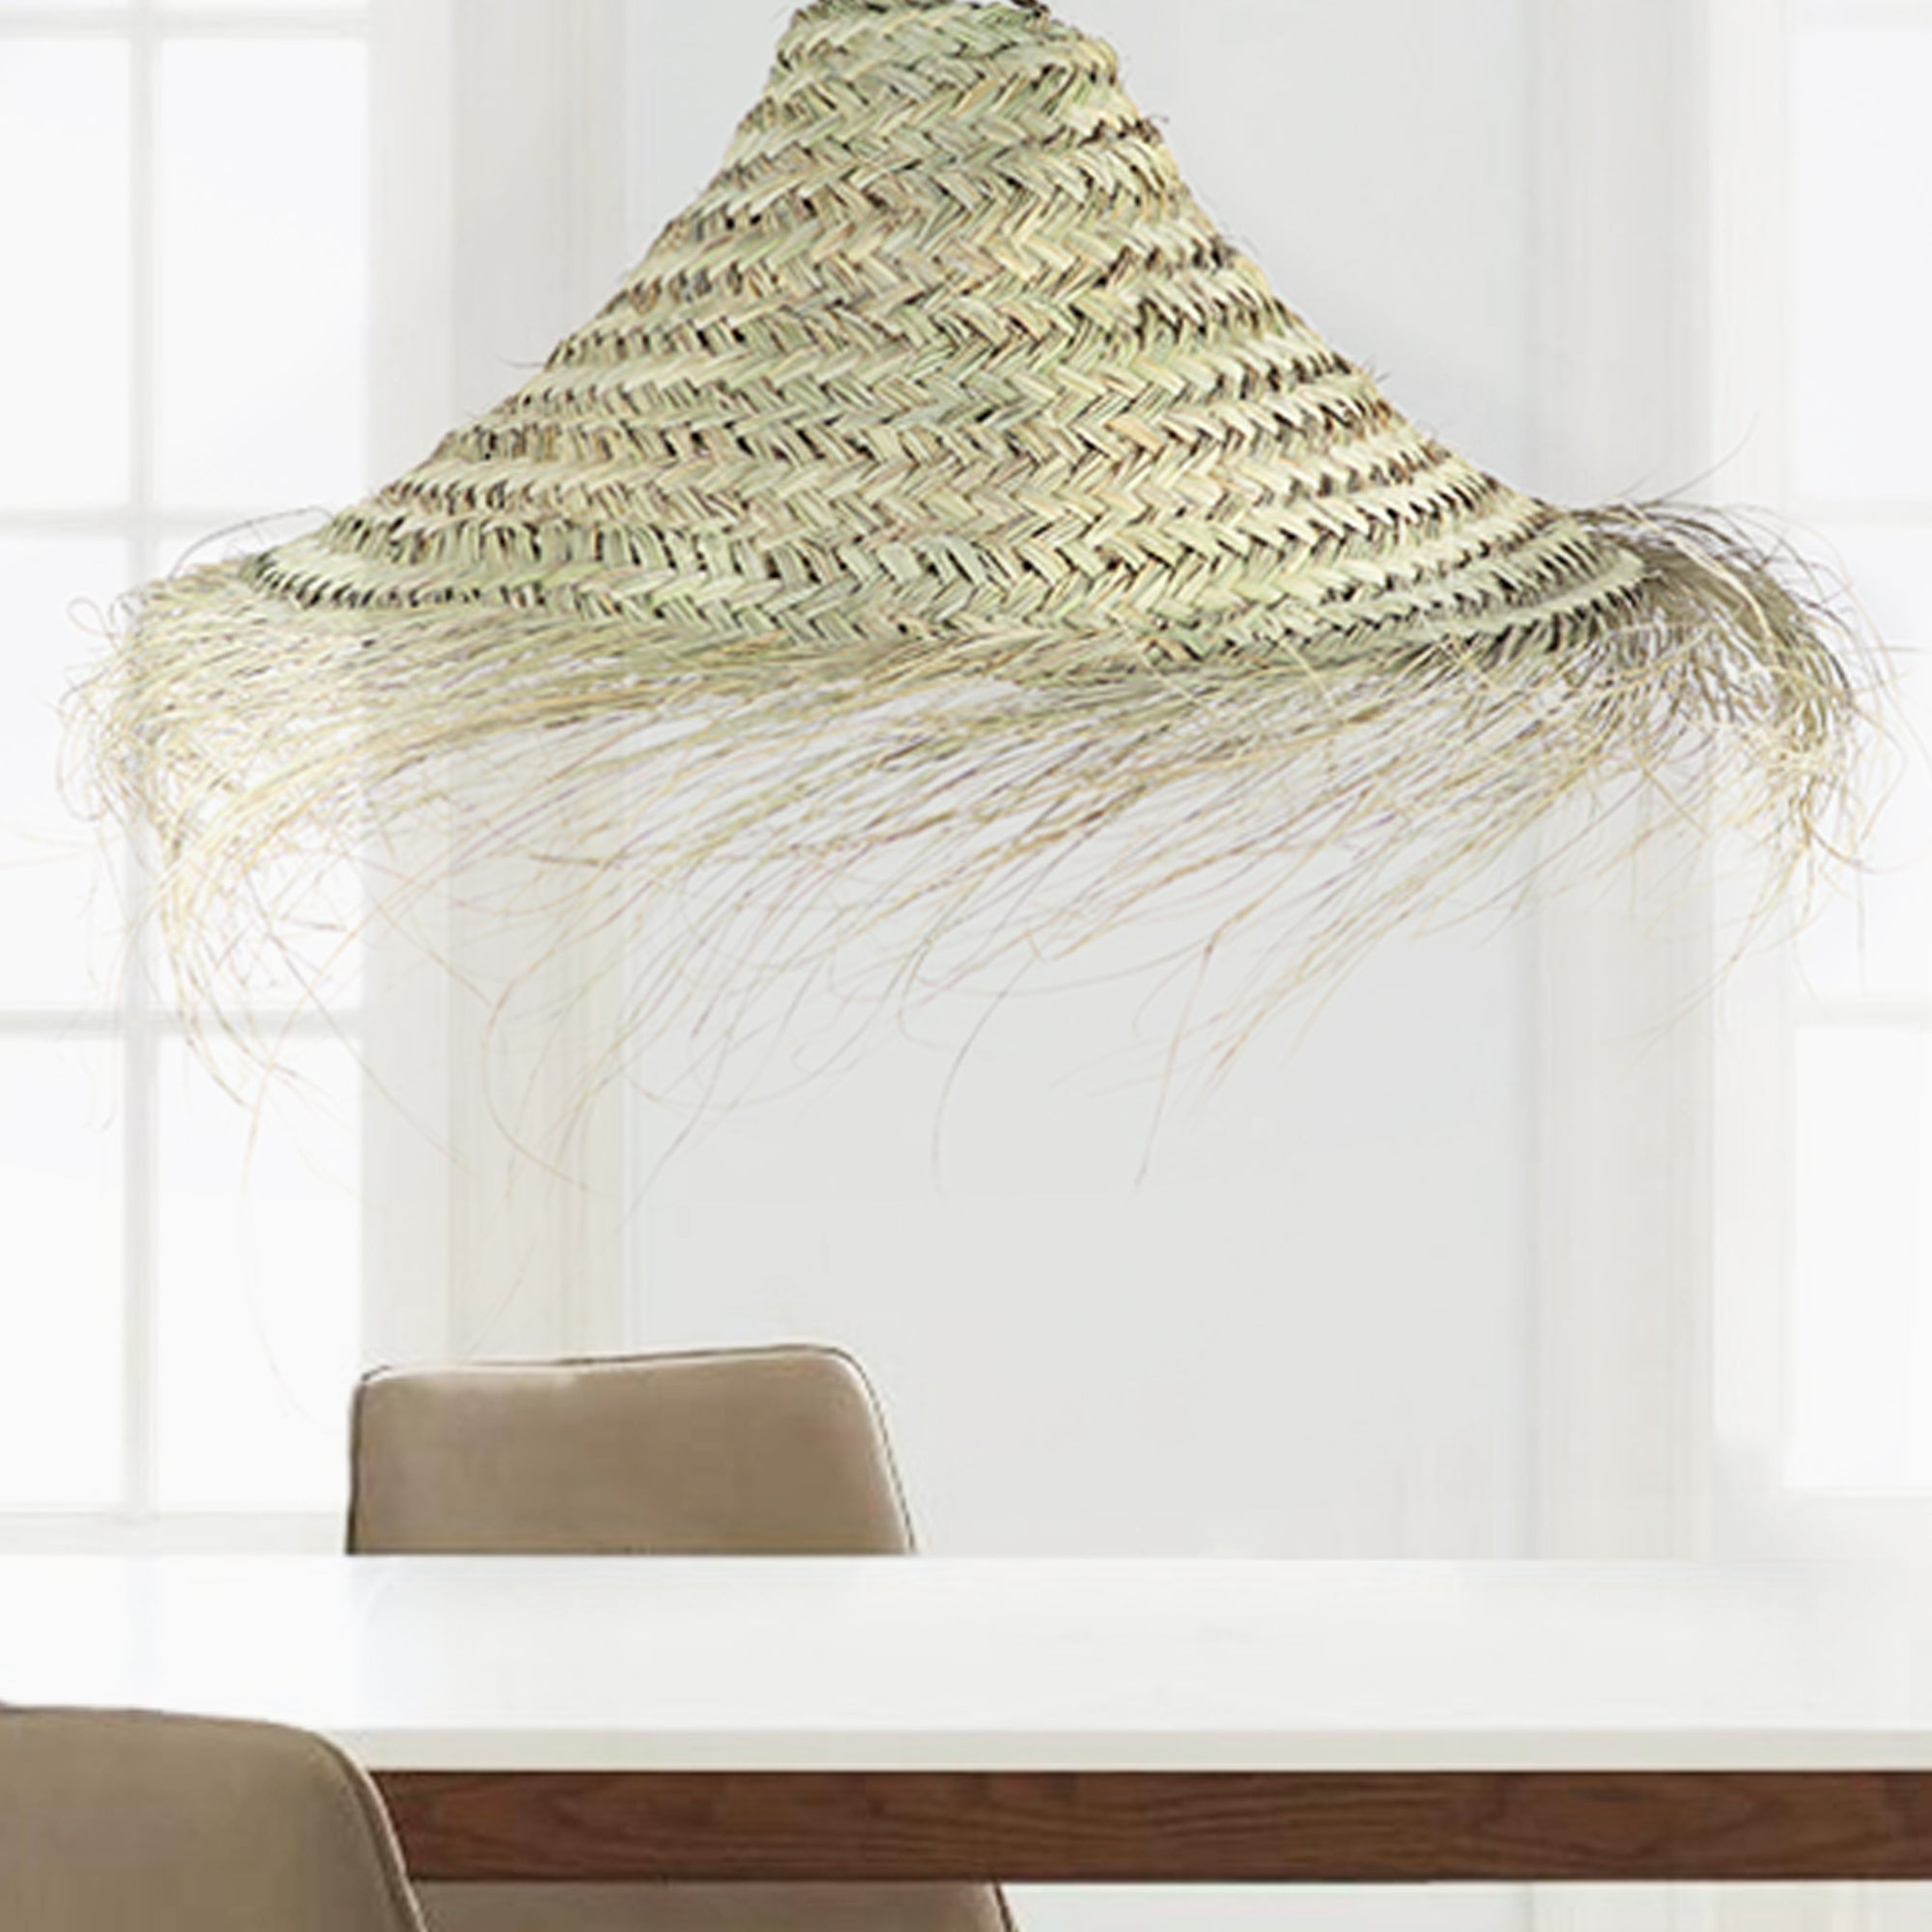 Handmade straw light pendant by artisans in Morocco